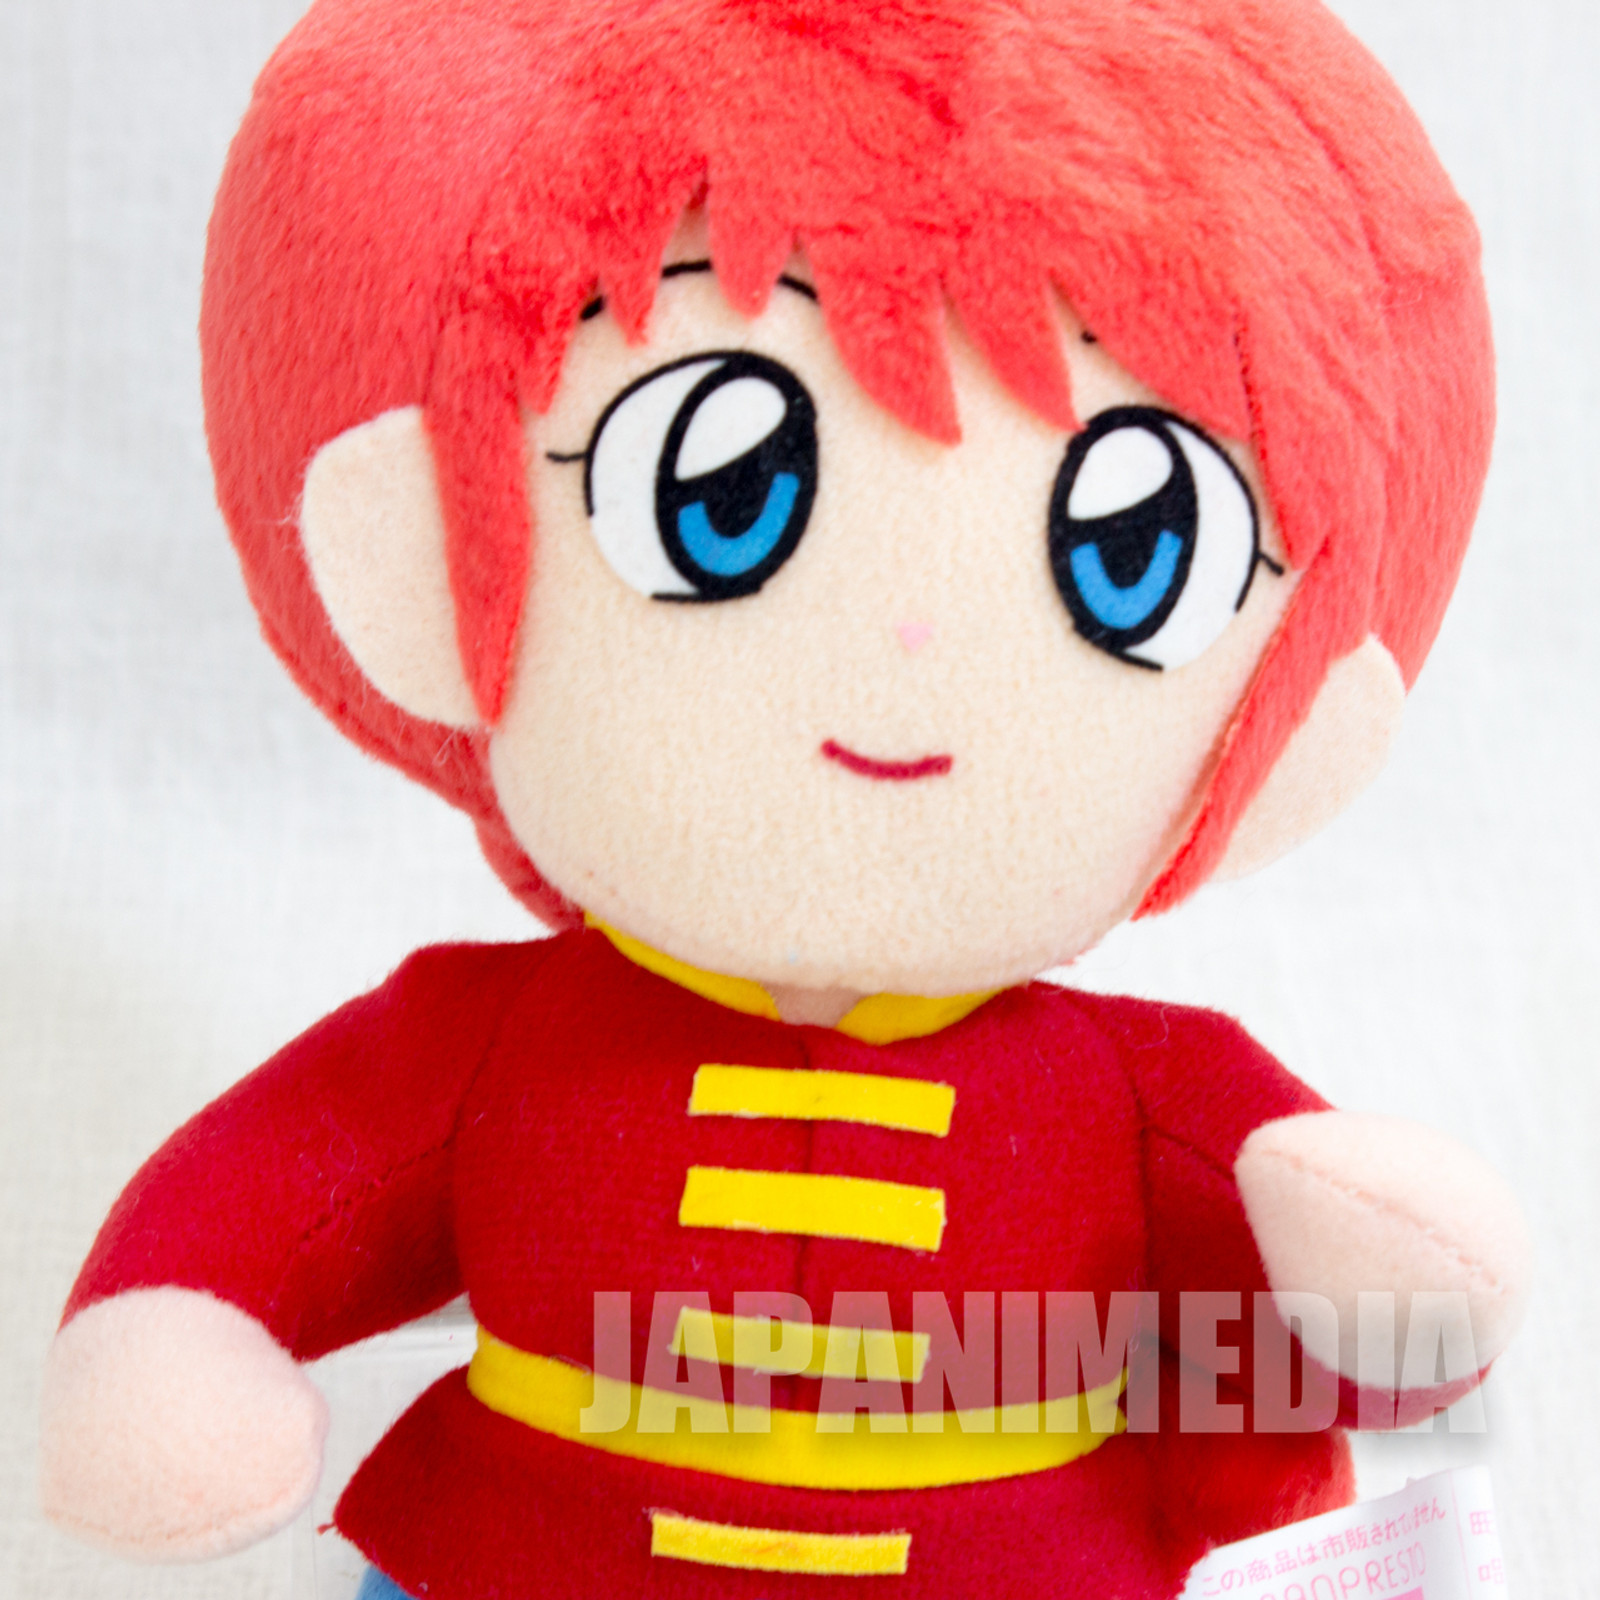 Ranma 1/2 Saotome Ranma Female Plush Doll JAPAN ANIME RUMIKO TAKAHASHI